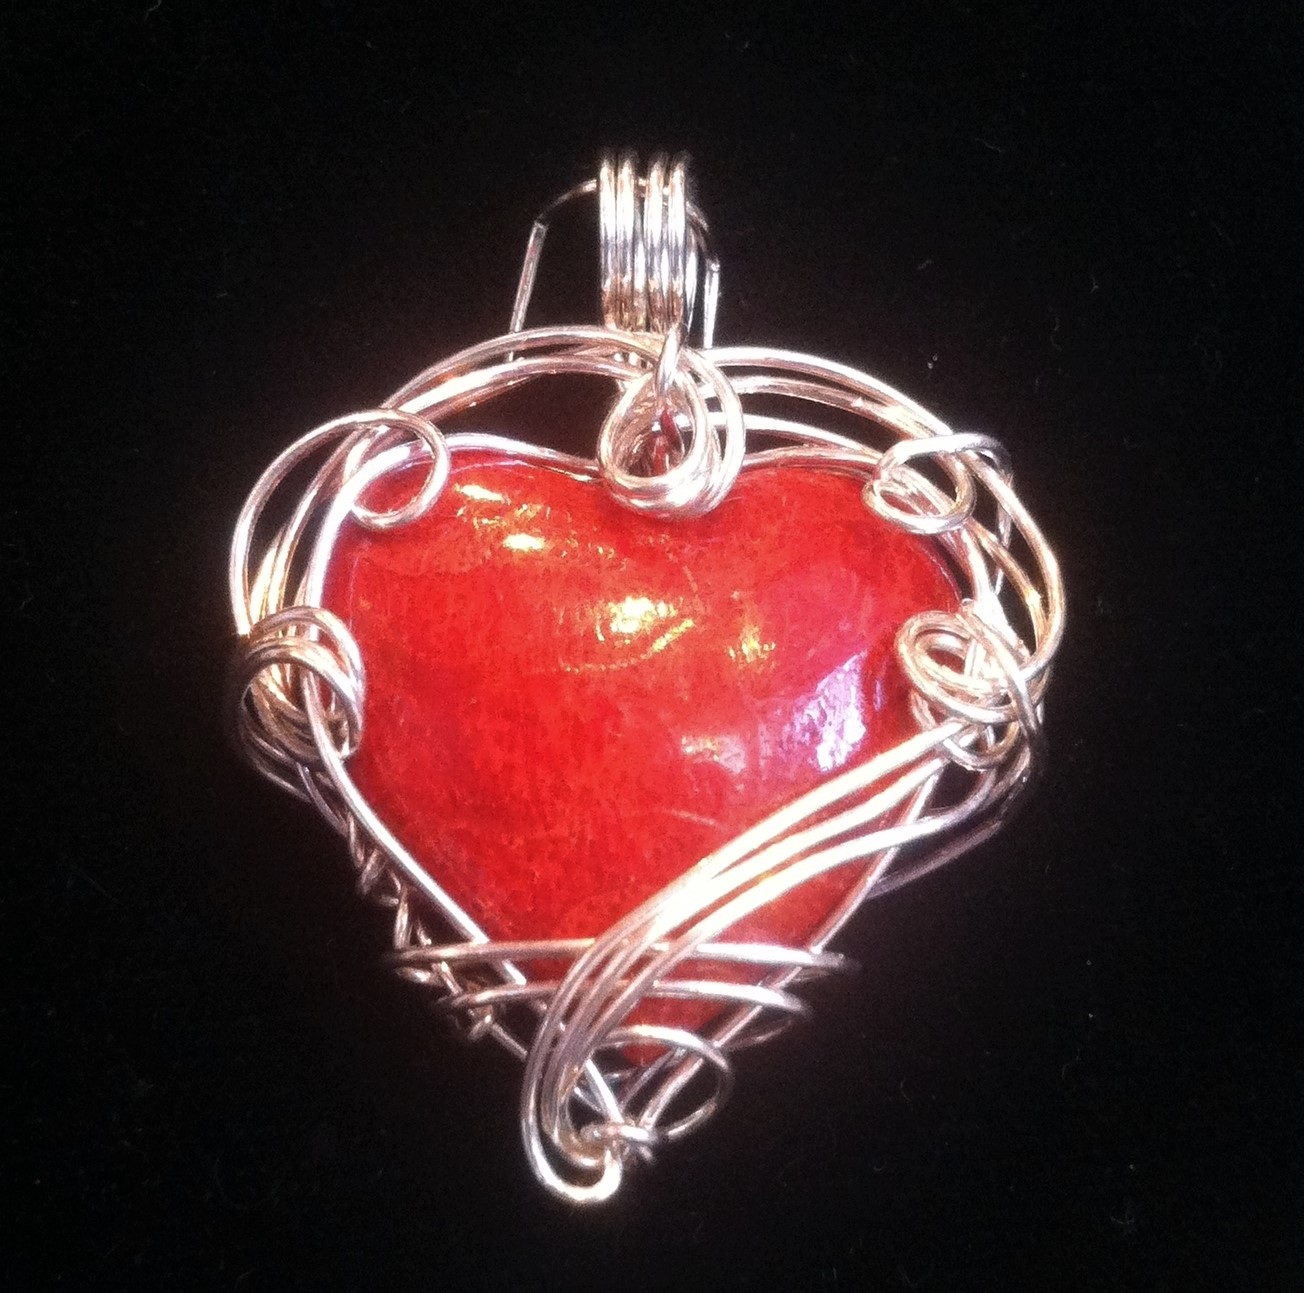 Dyed sponge coral heart pendant wrapped in sterling silver swirls